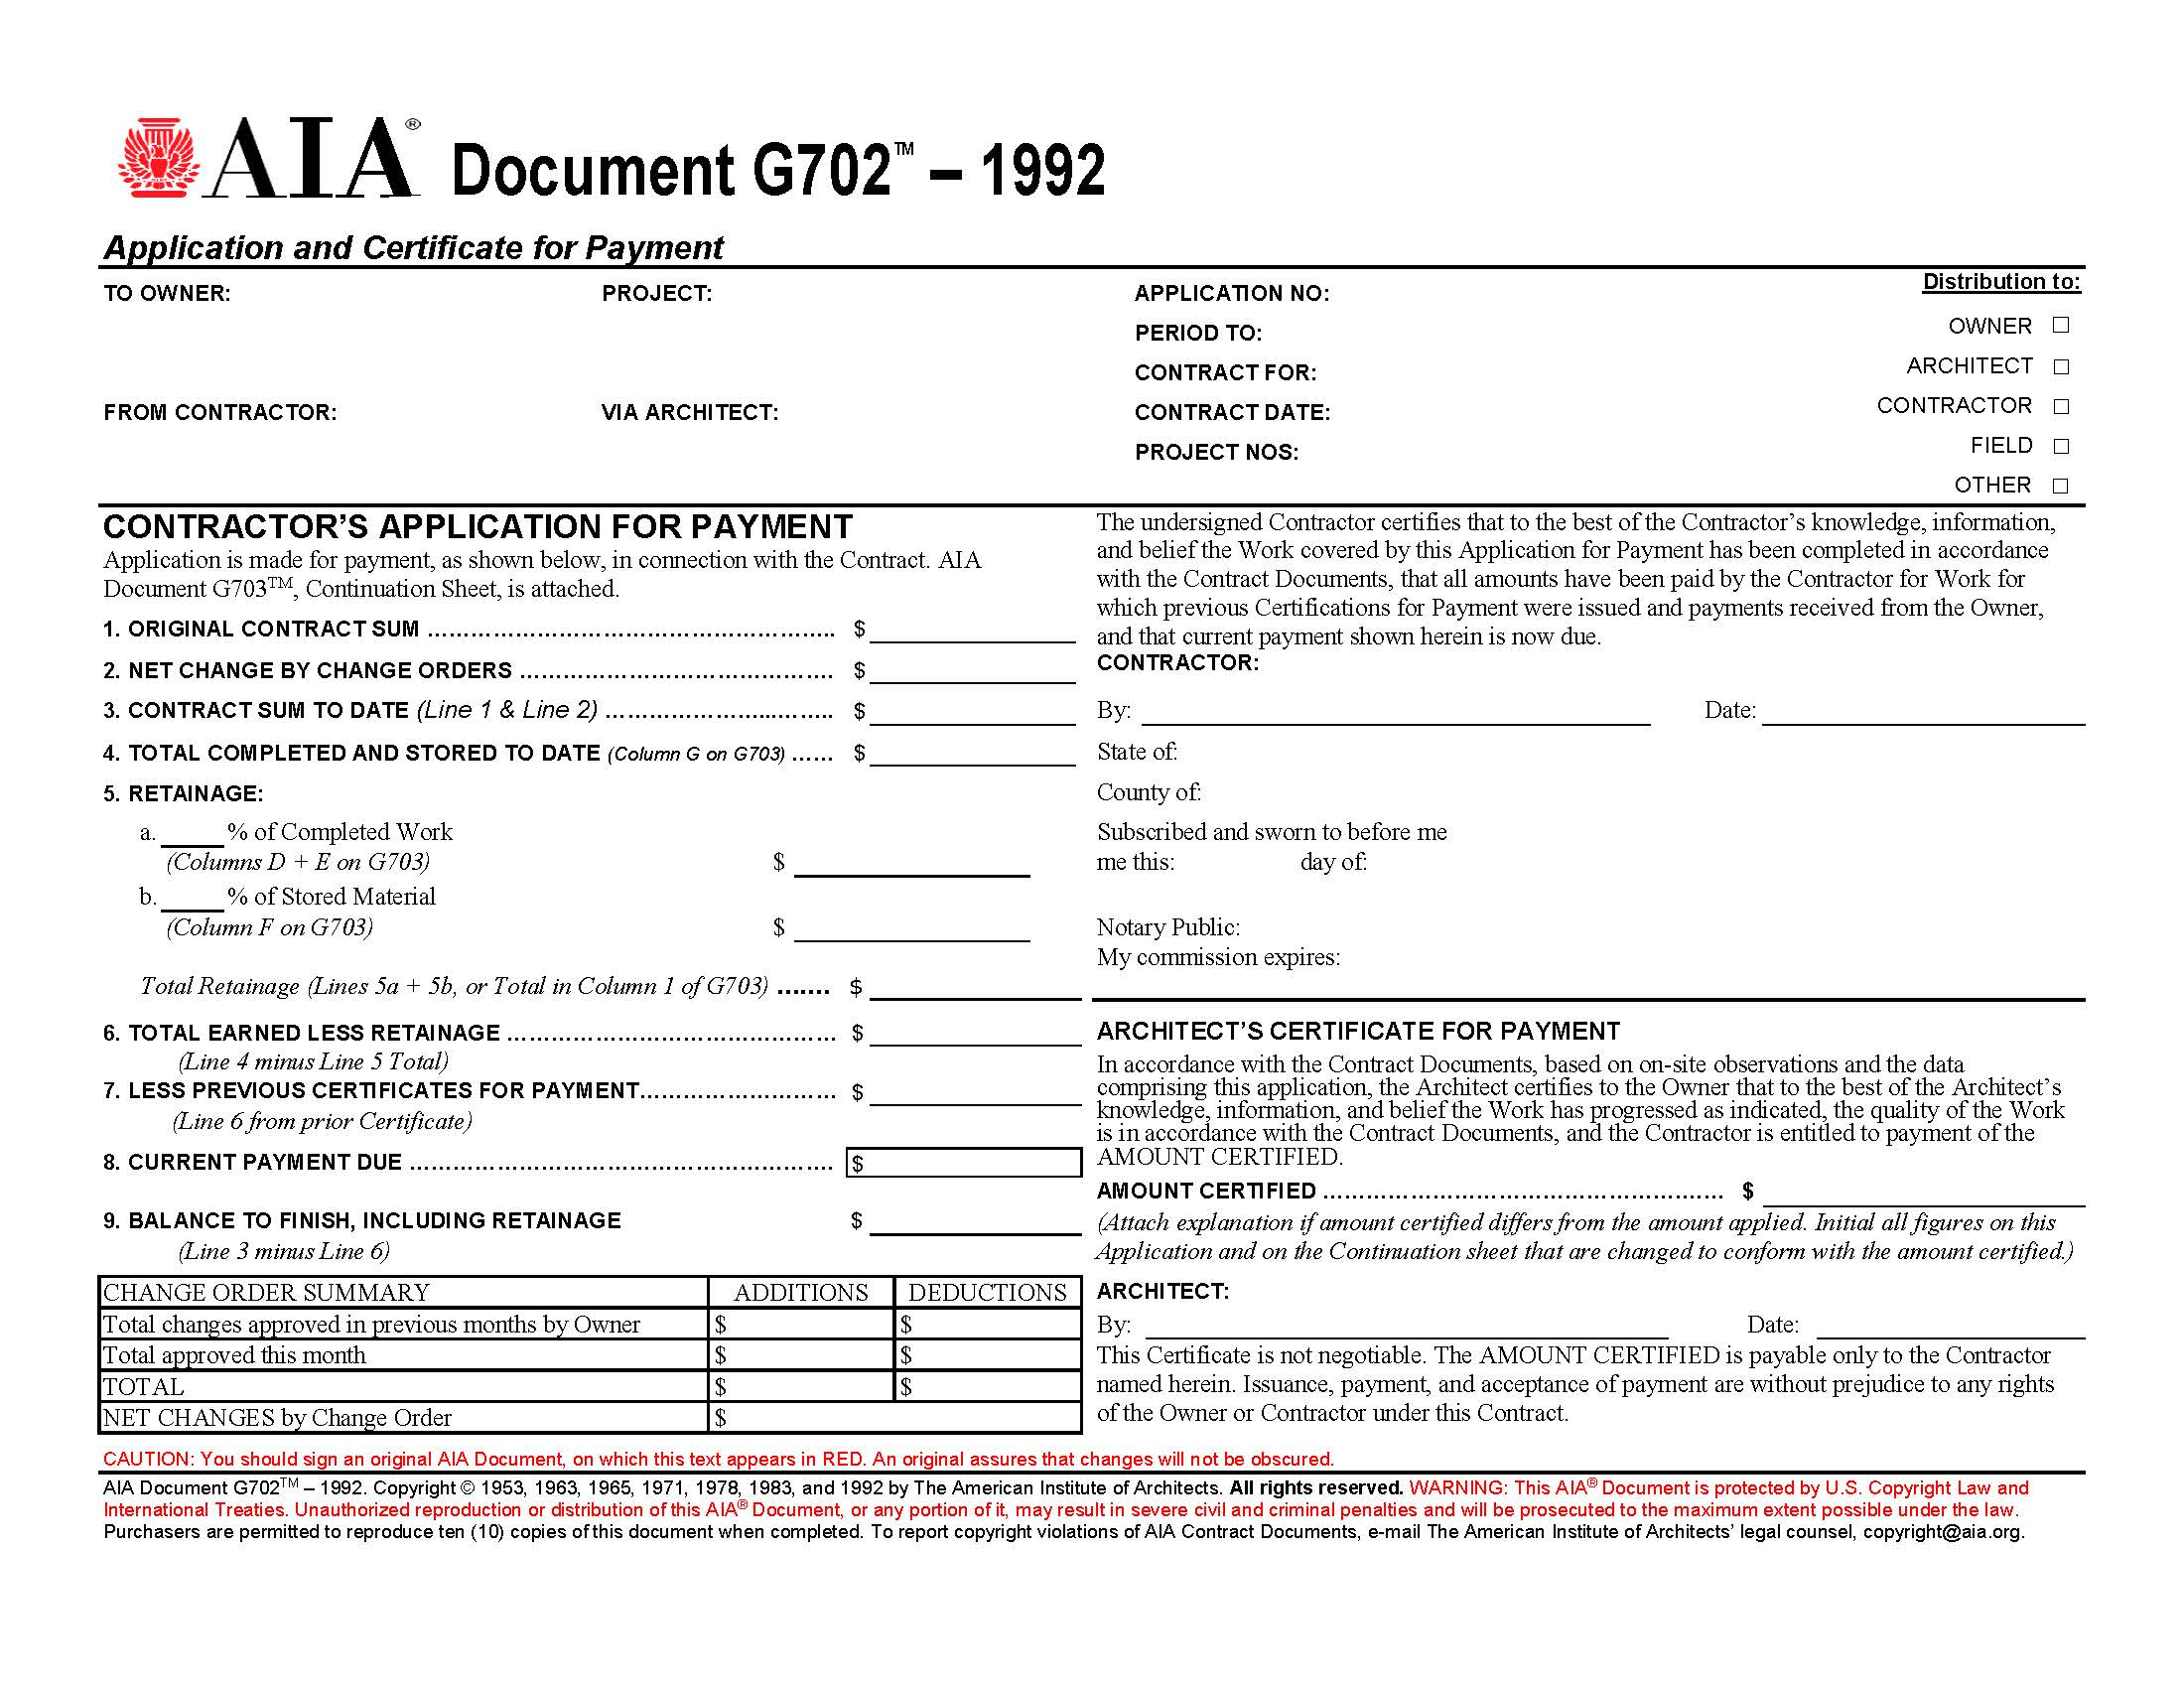 AIA G702 Contractor's Application for Payment form image